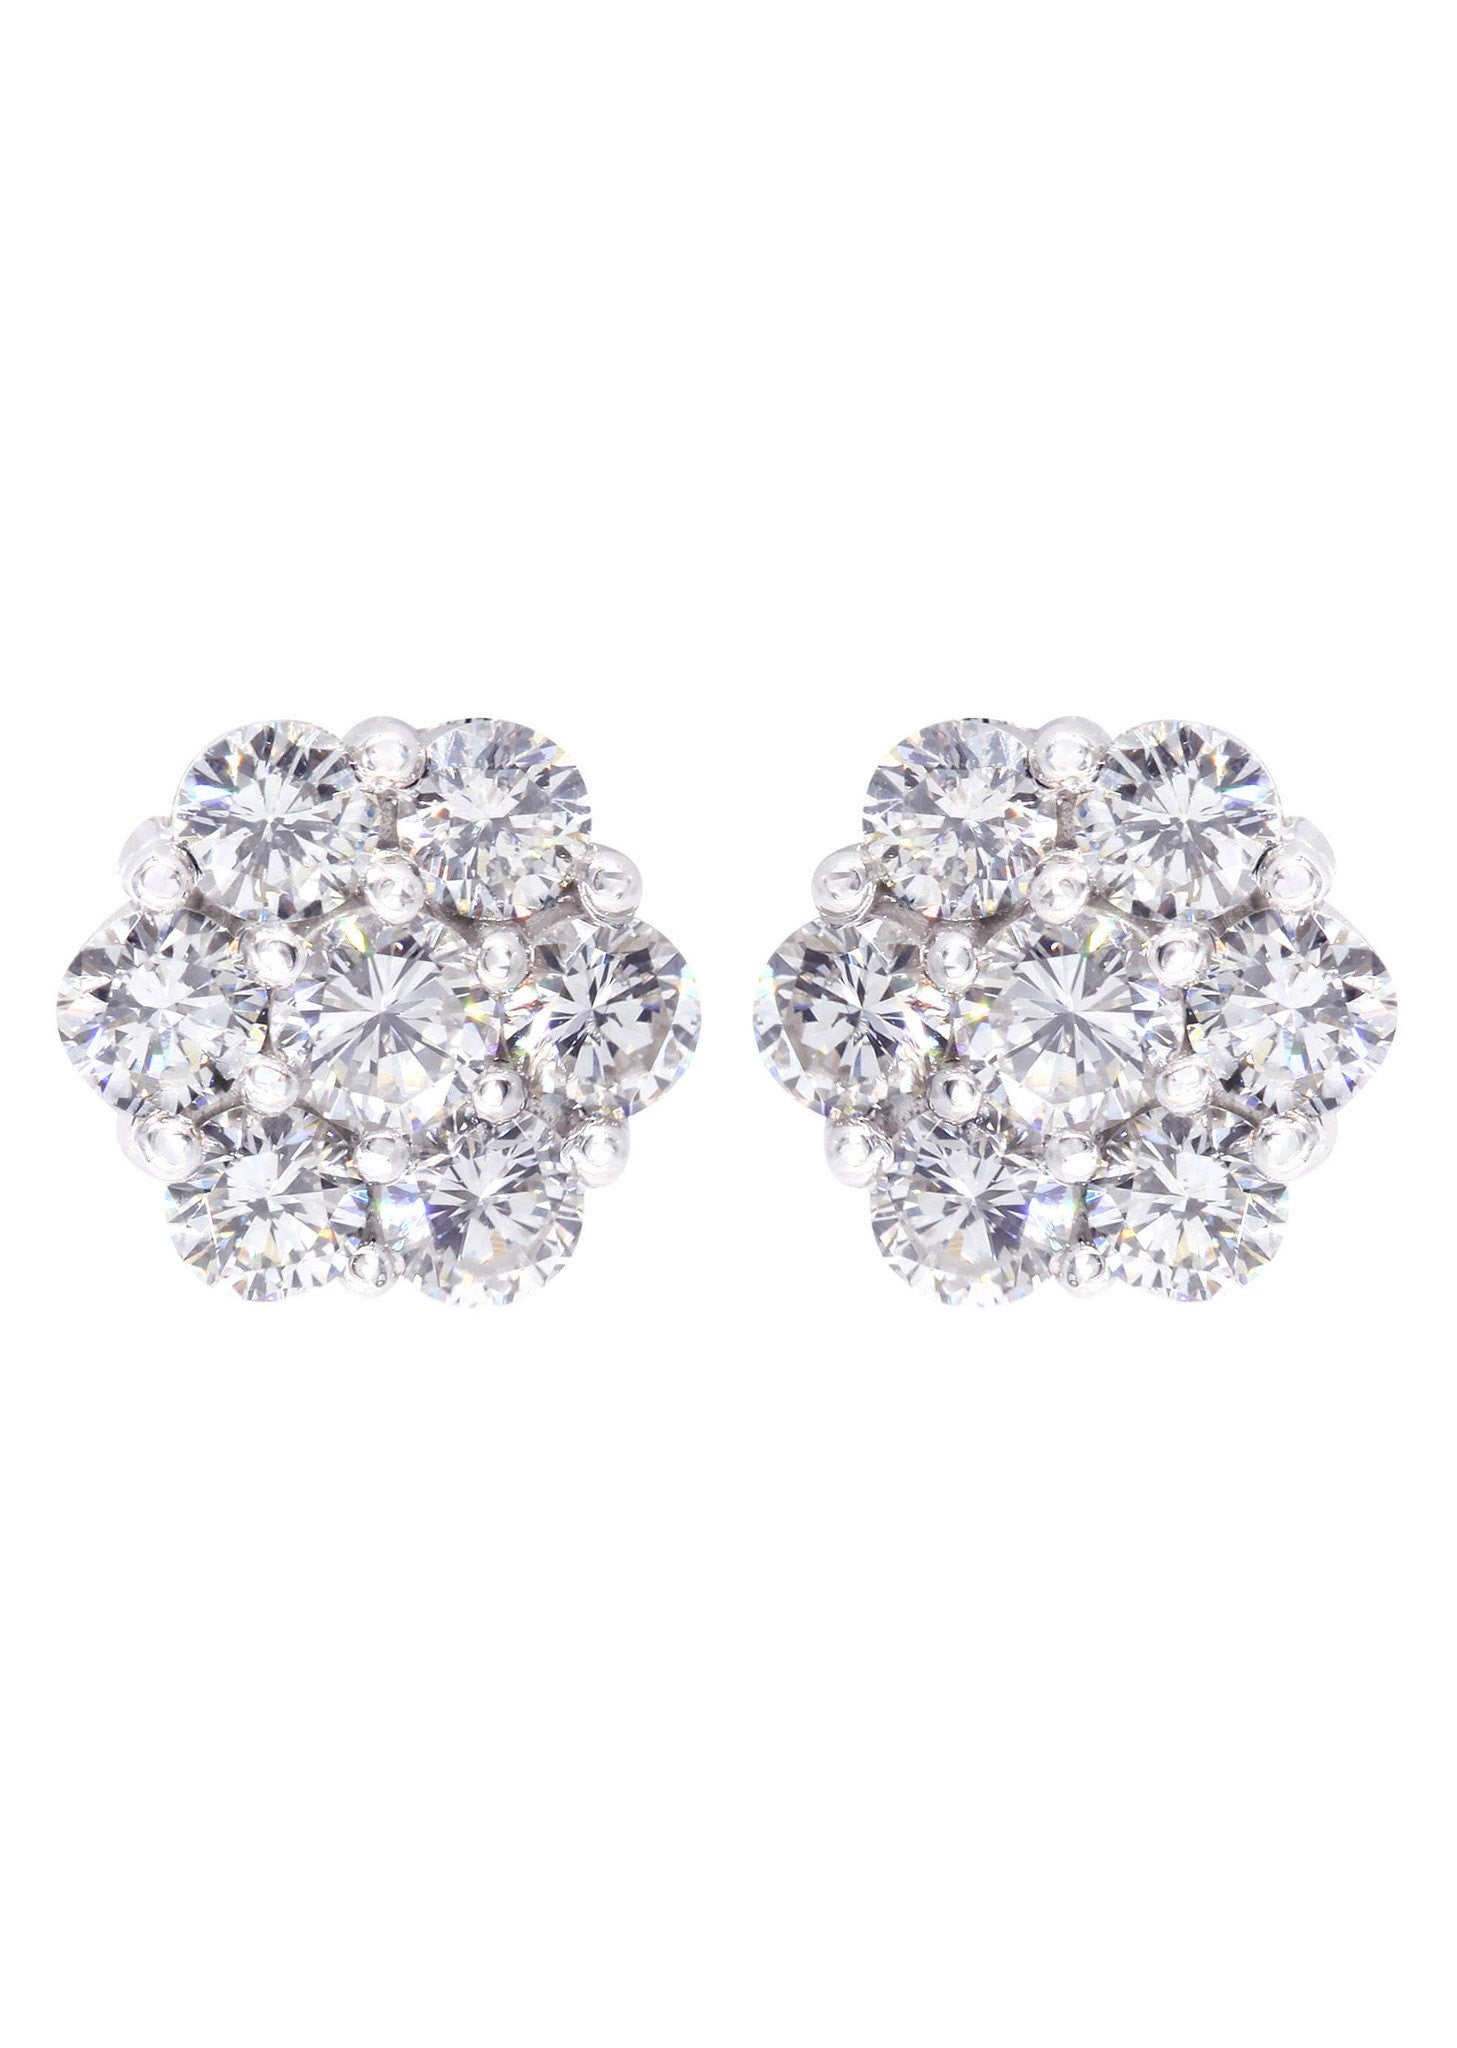 Stud Diamond Earrings For Men Illusion Set 14k White